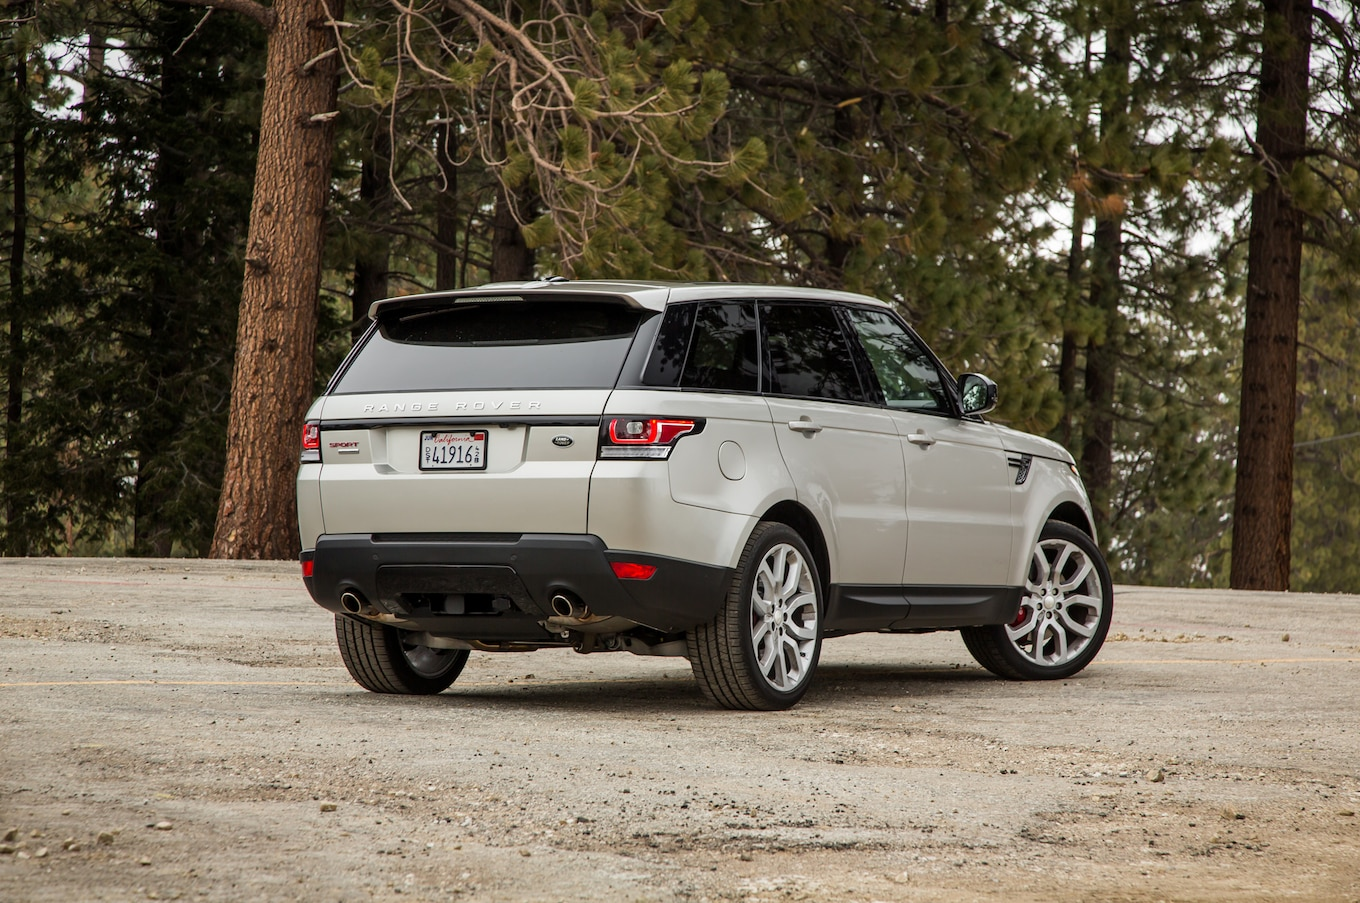 2015 Land Rover Range Rover Sport Long Term Update 3